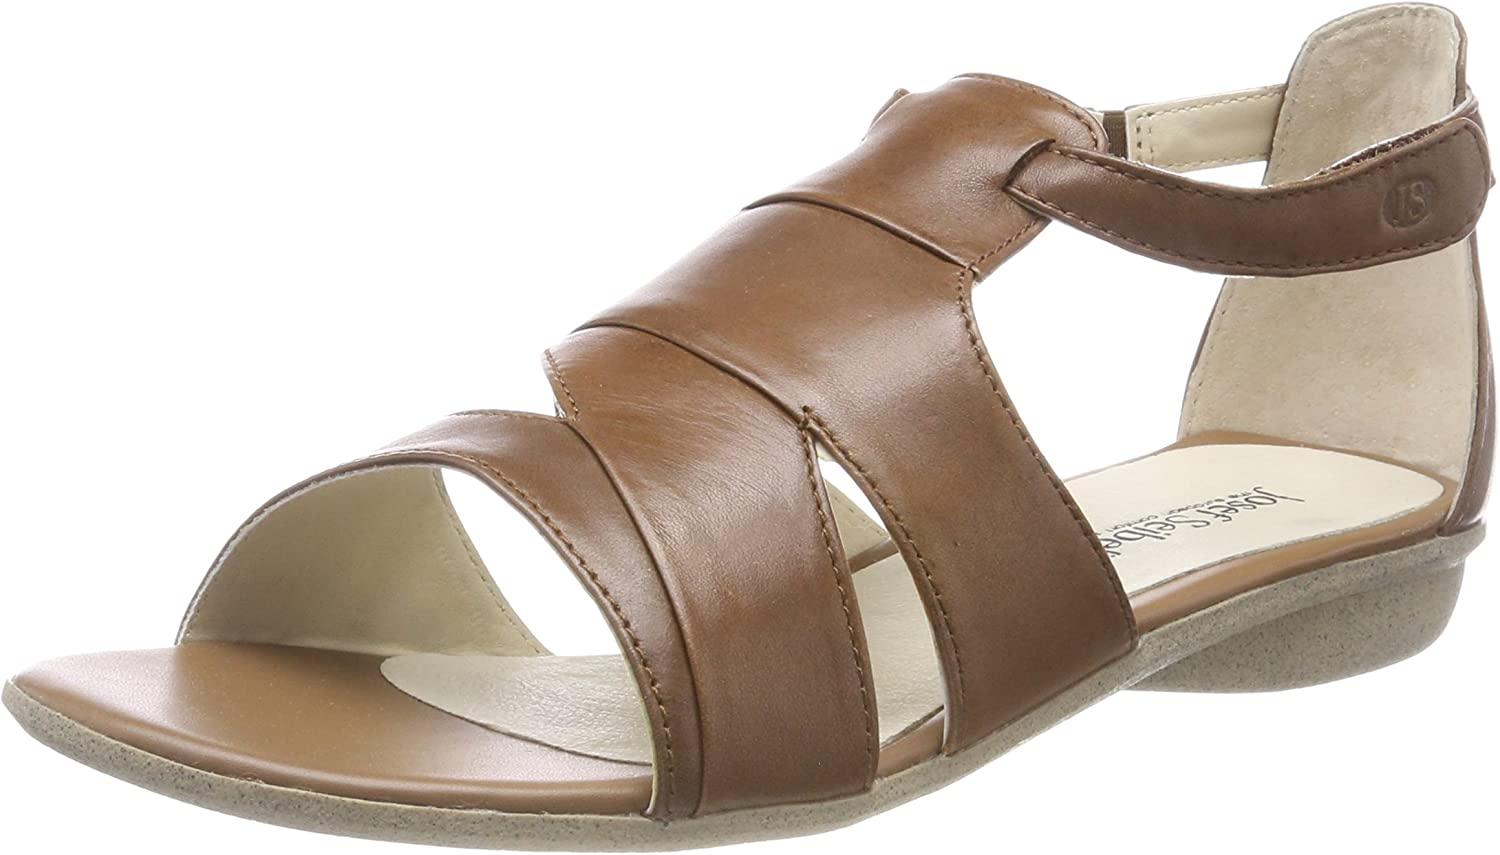 Josef Seibel Fabia 3 Womens Lt. Brown Casual